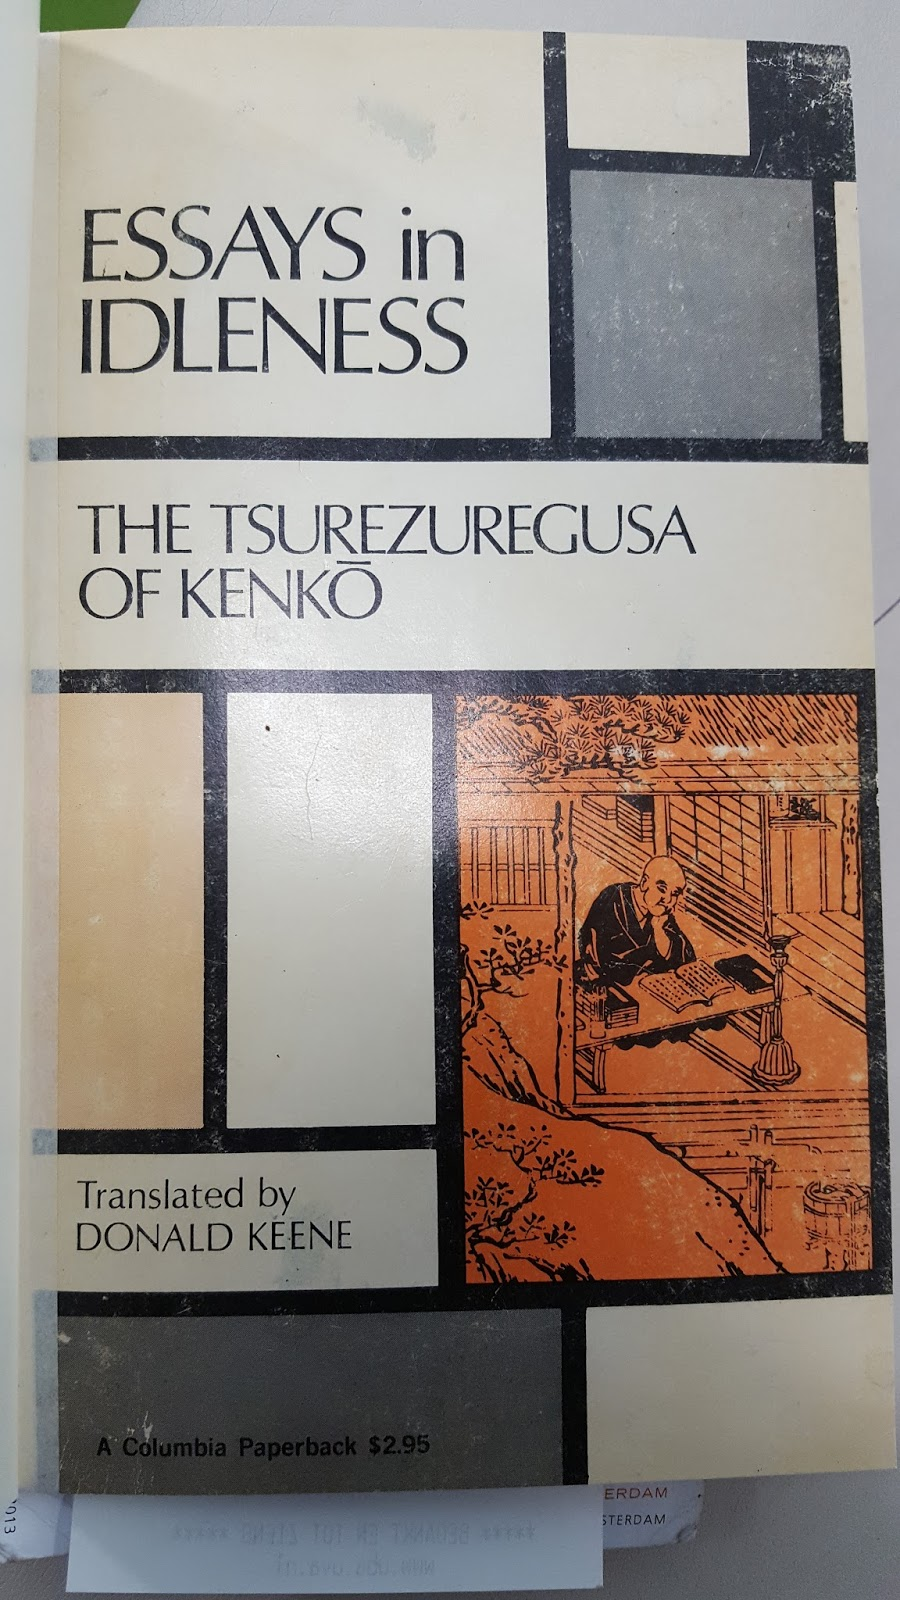 007 Essays In Idleness 20180502 084153 Essay Magnificent Summary The Tsurezuregusa Of Kenkō Full